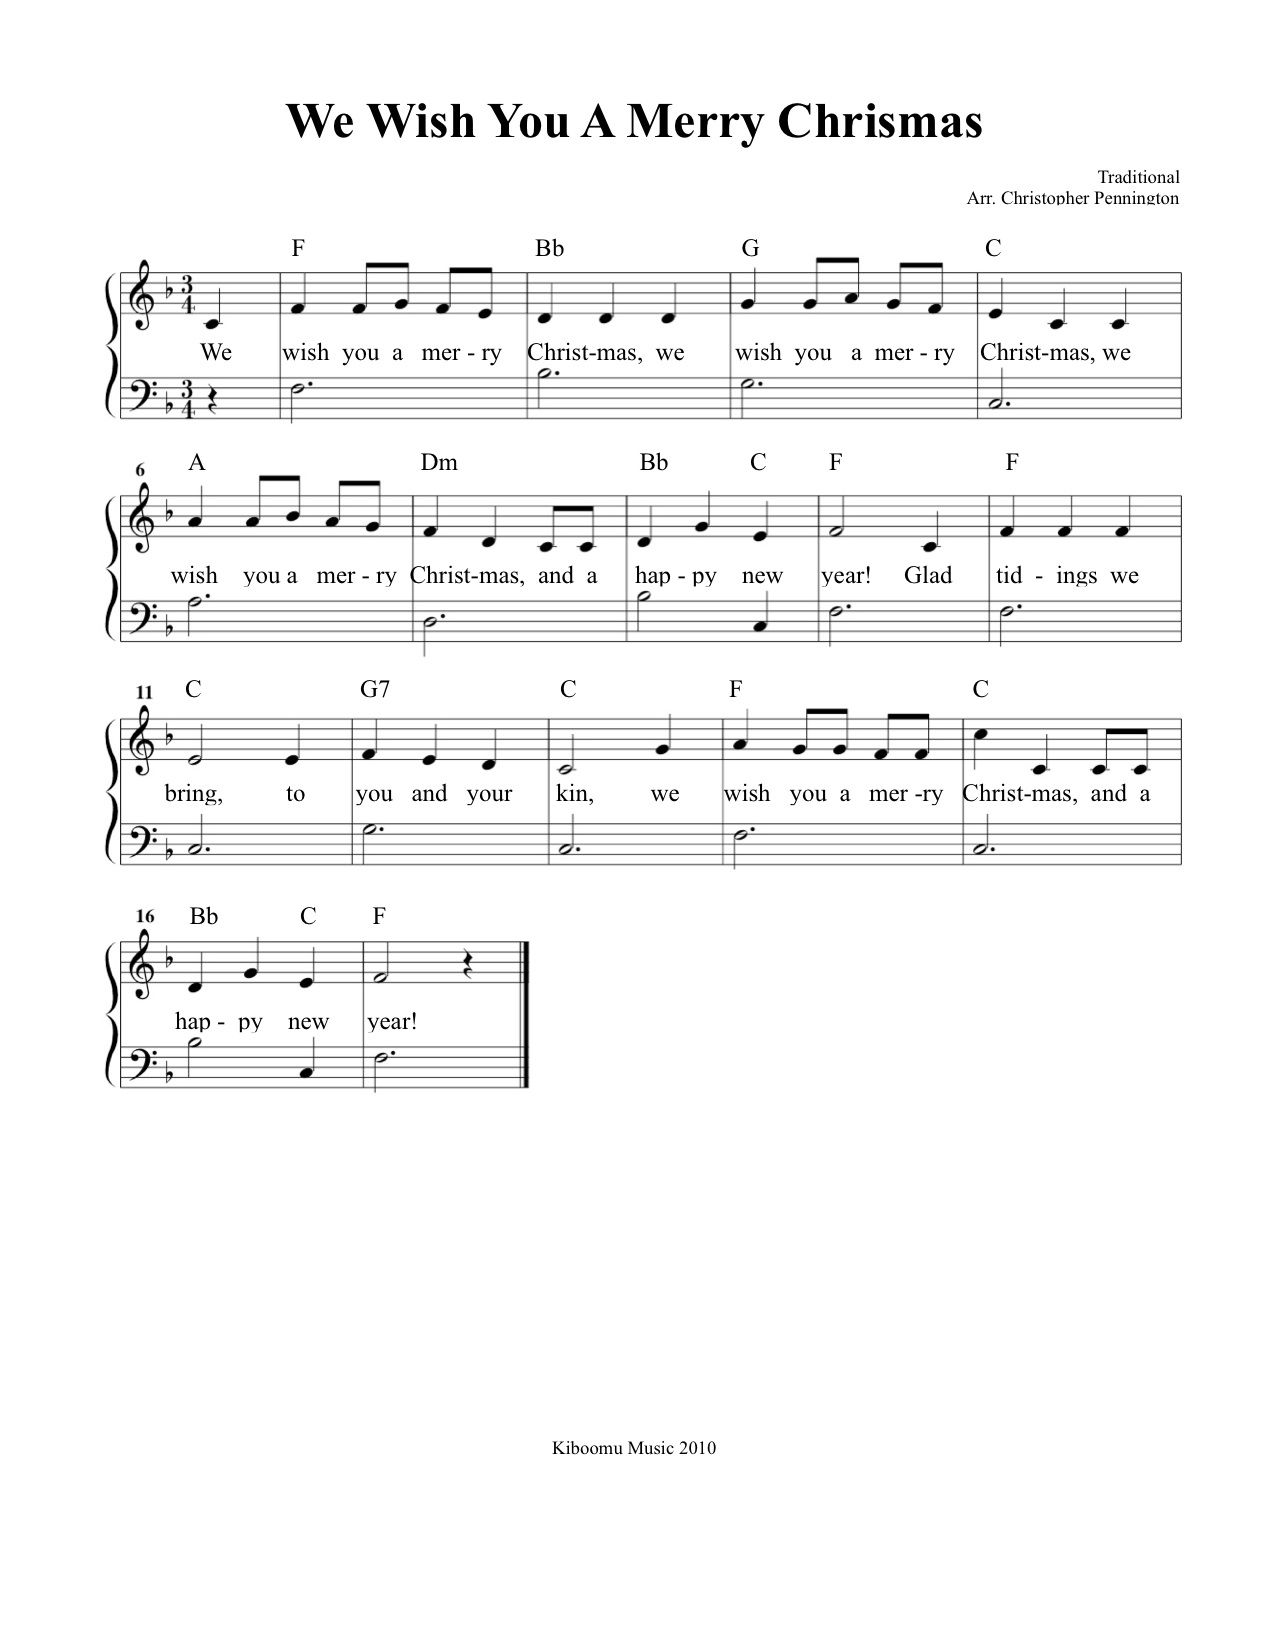 We Wish You A Merry Christmas Piano.We Wish You A Merry Christmas Sheet Music And Song For Kids